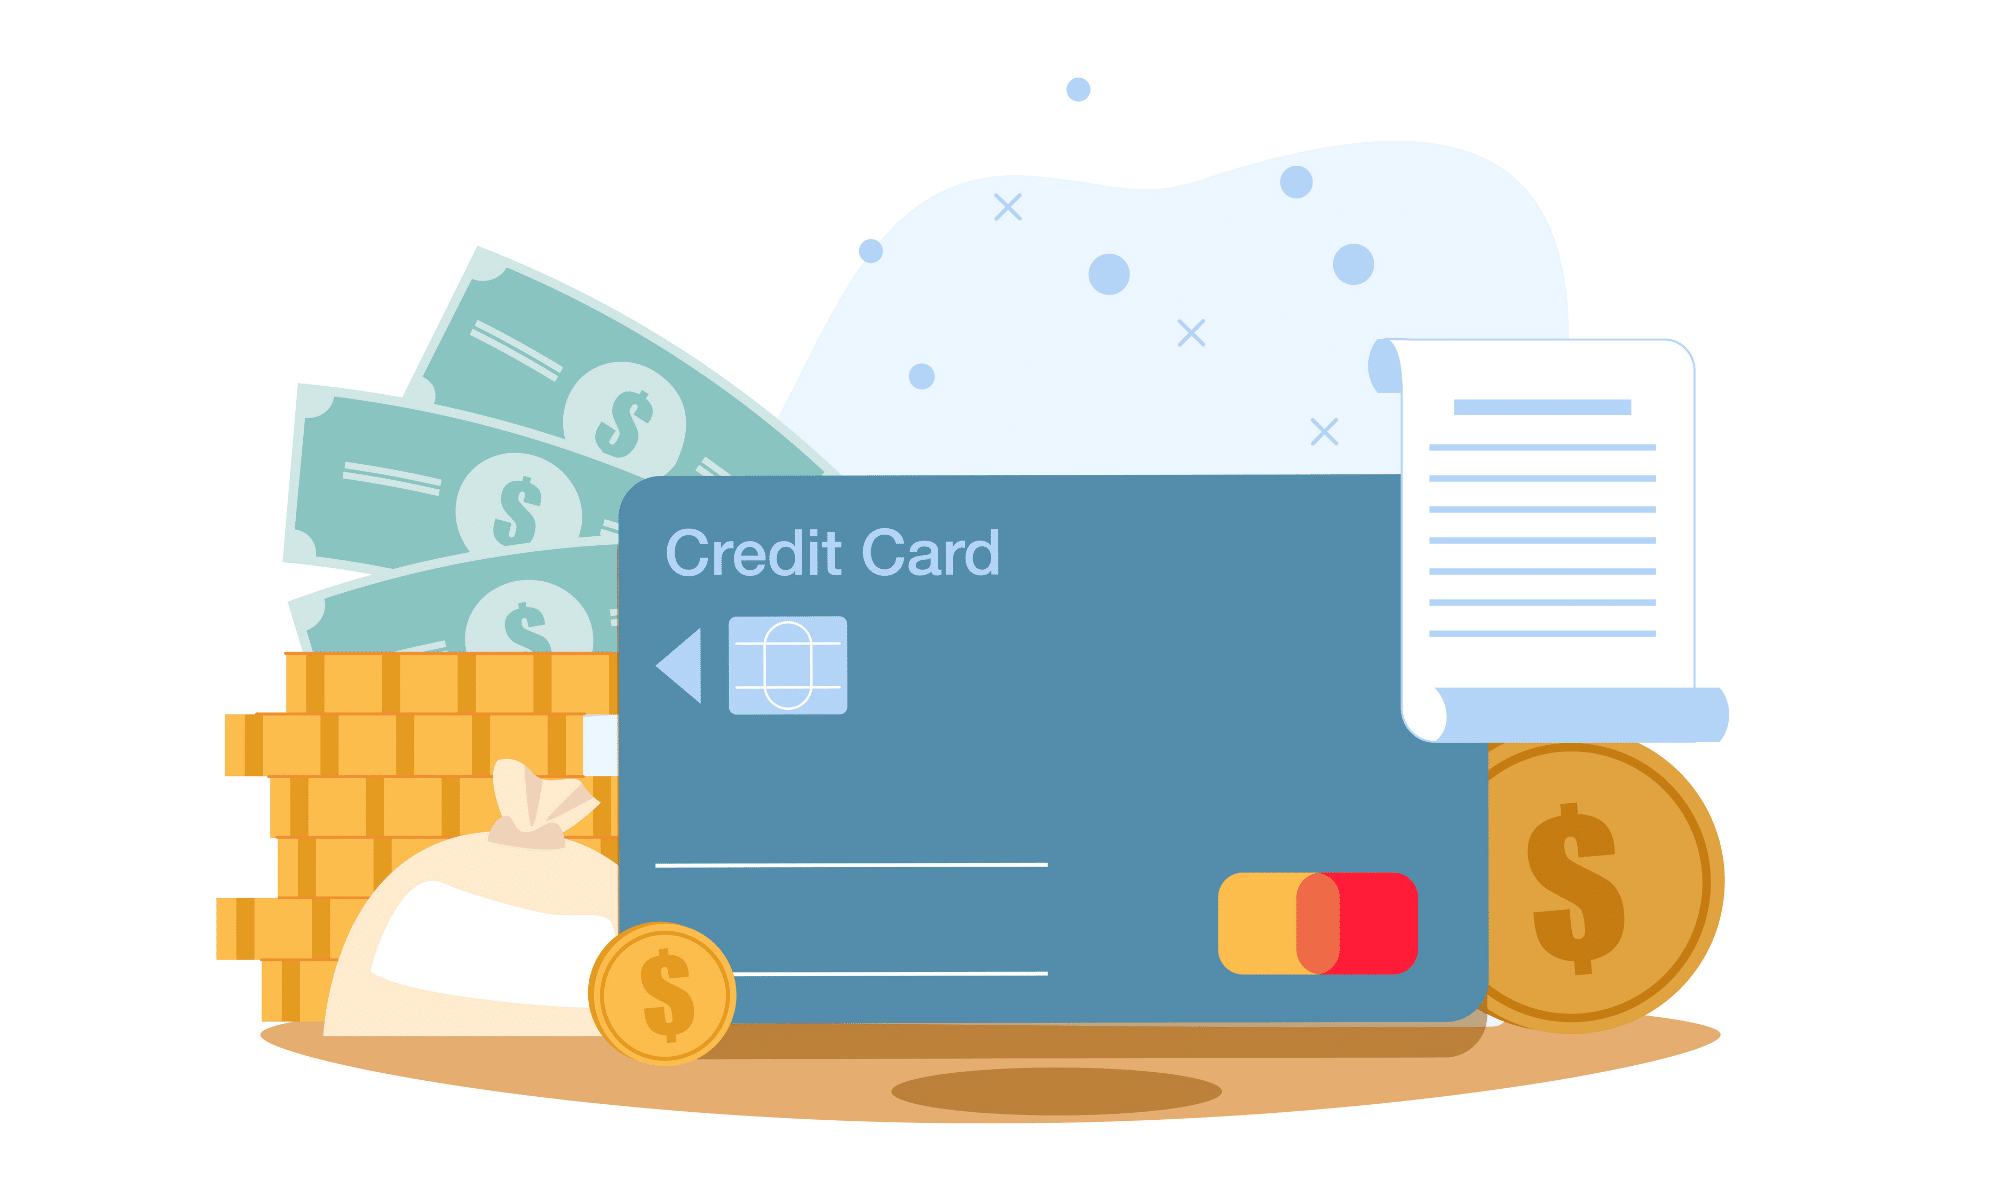 Graphic of credit card and cash